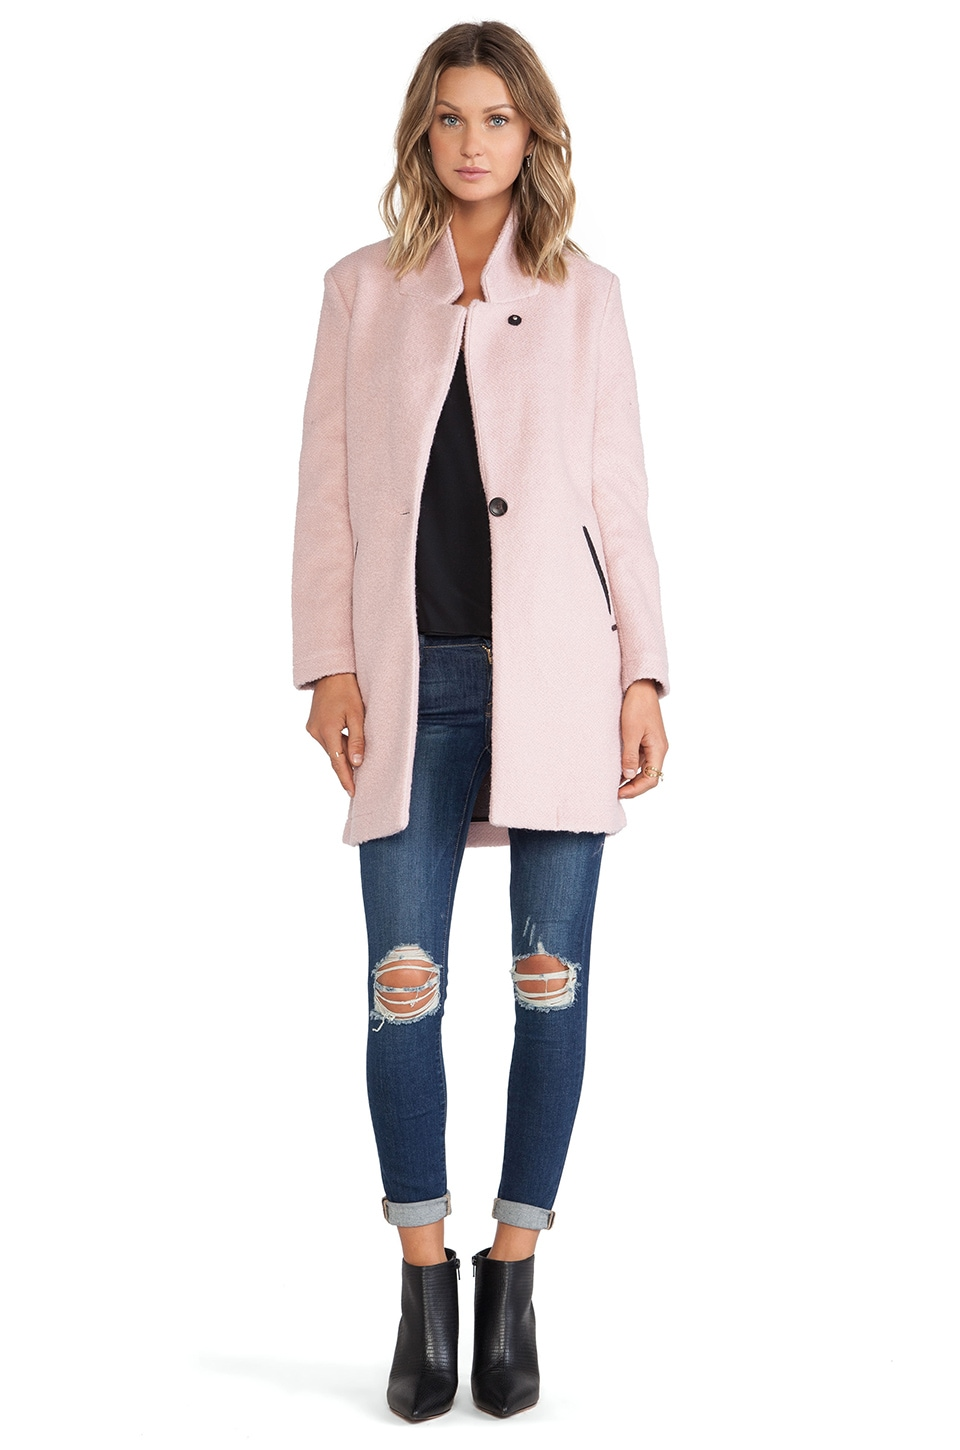 Maison Scotch Classic Tailored Jacket in Light Pink | REVOLVE